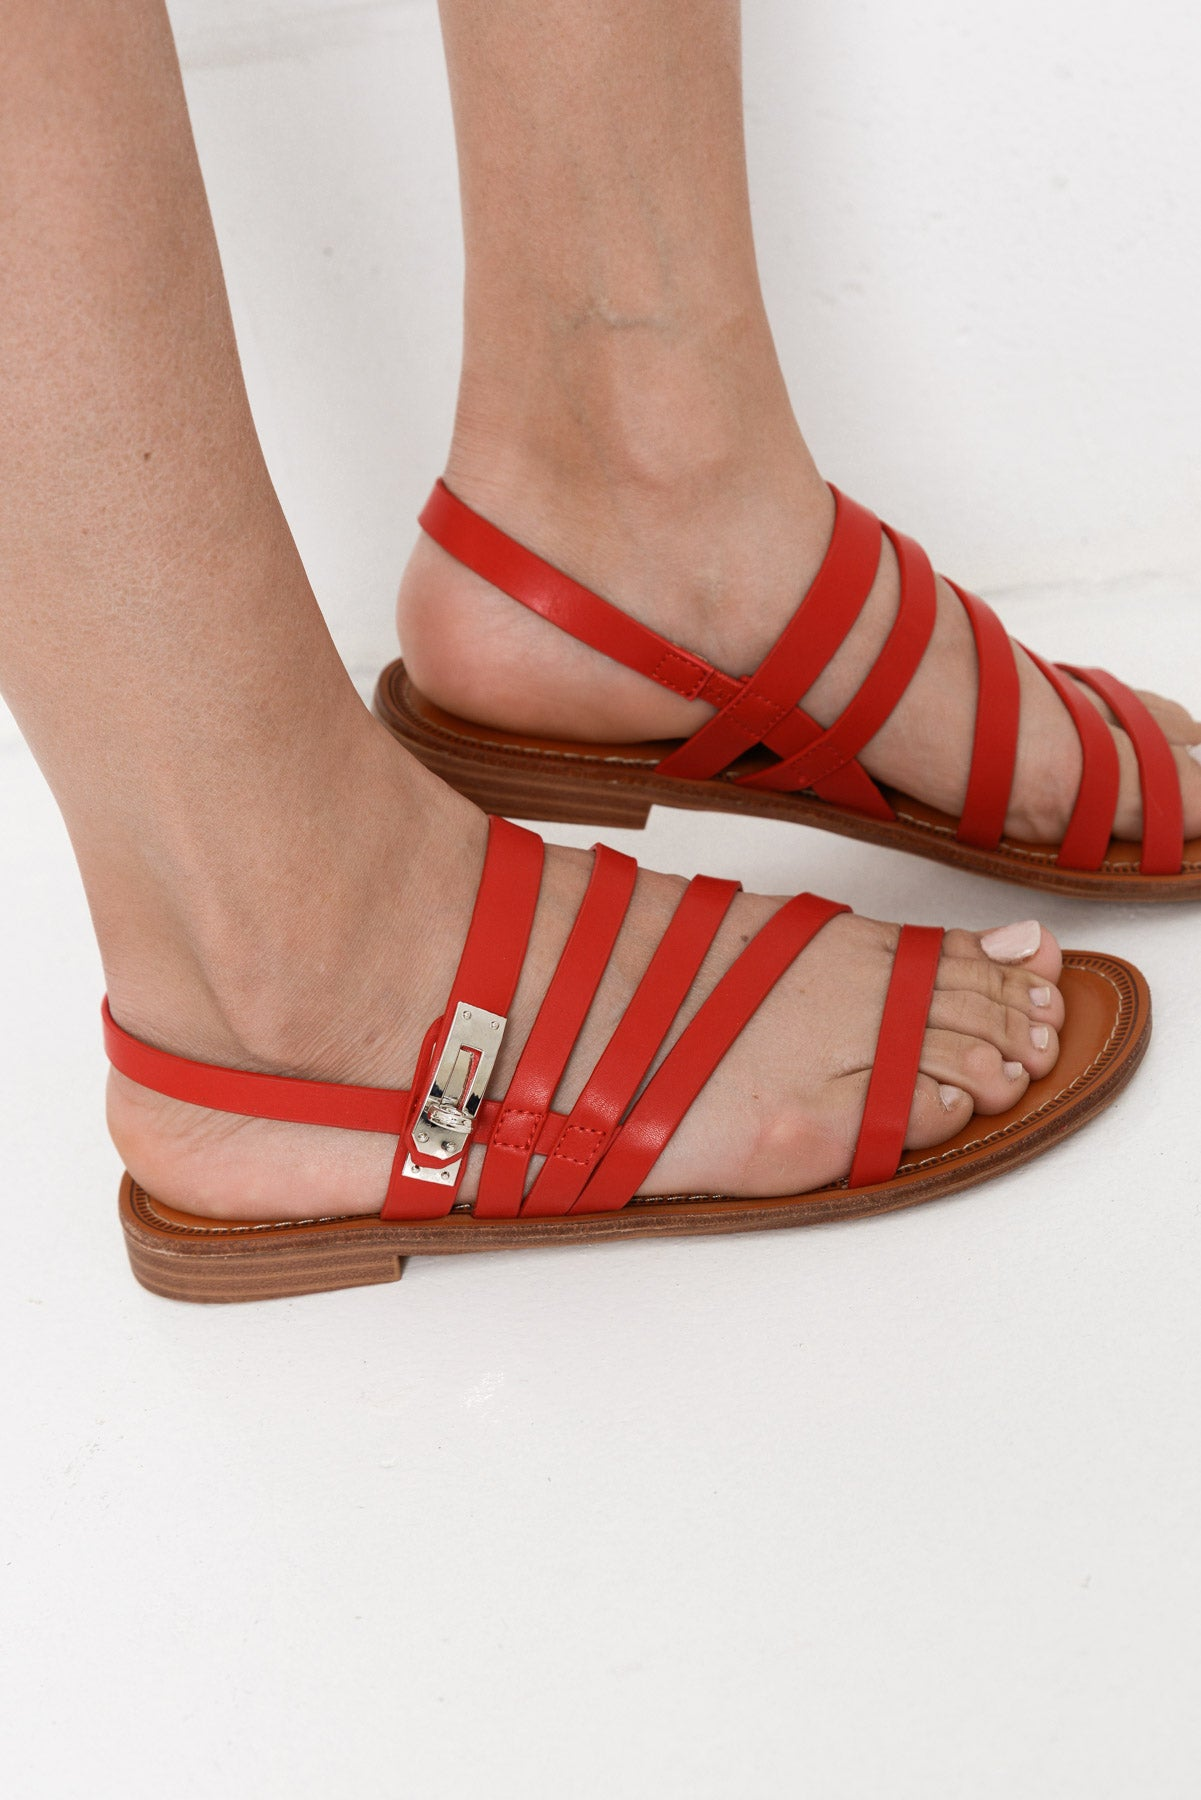 Aten Red Sandal - Blue Bungalow